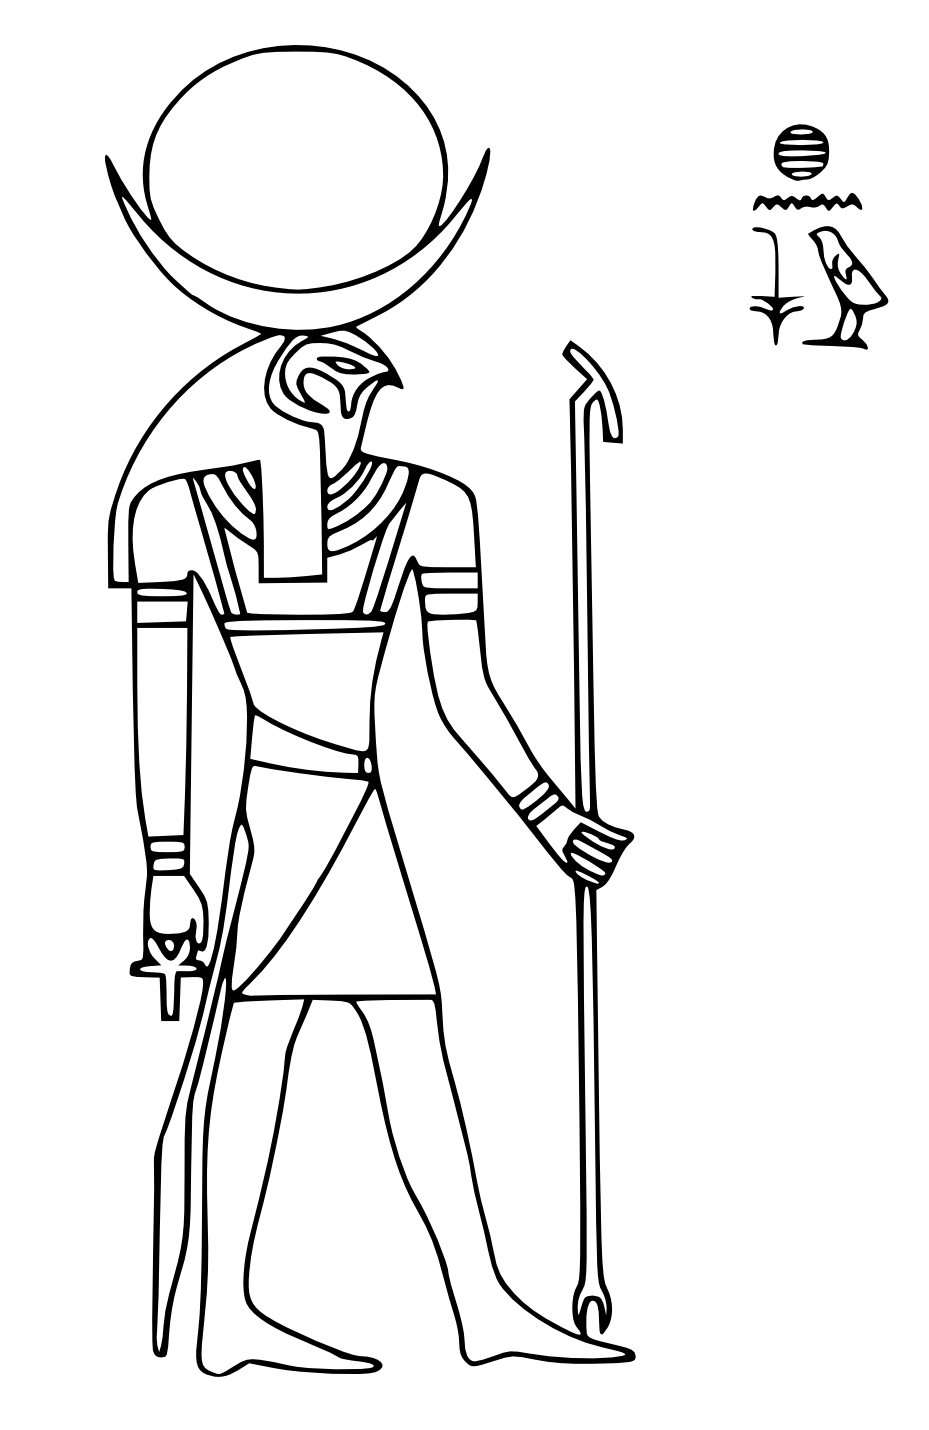 Printable coloring pages - Egyptian Mythology (Gods and Goddesses ...